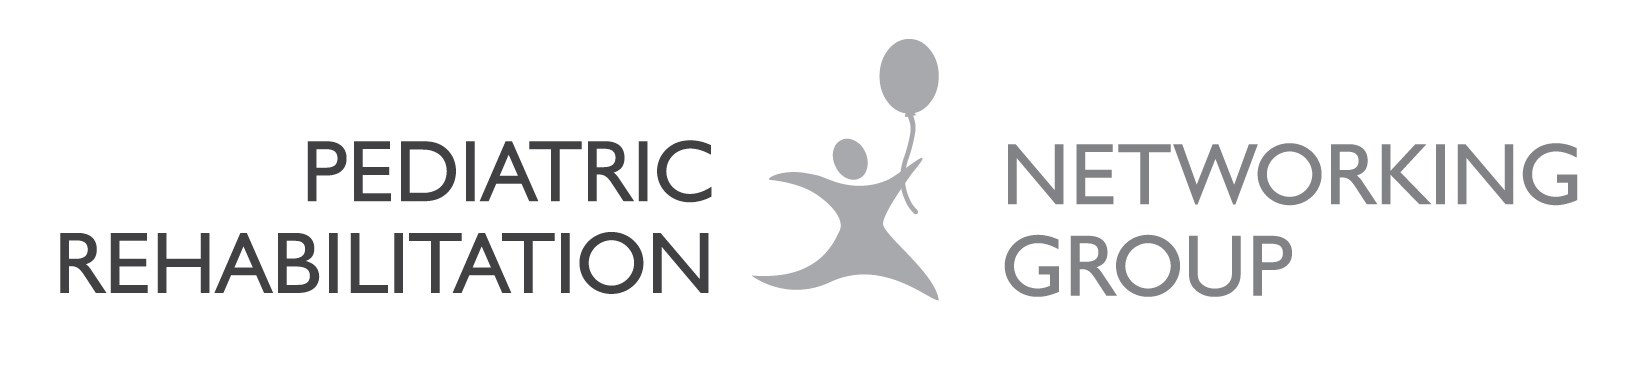 ACRM Pediatric Rehabilitation Networking Group logo